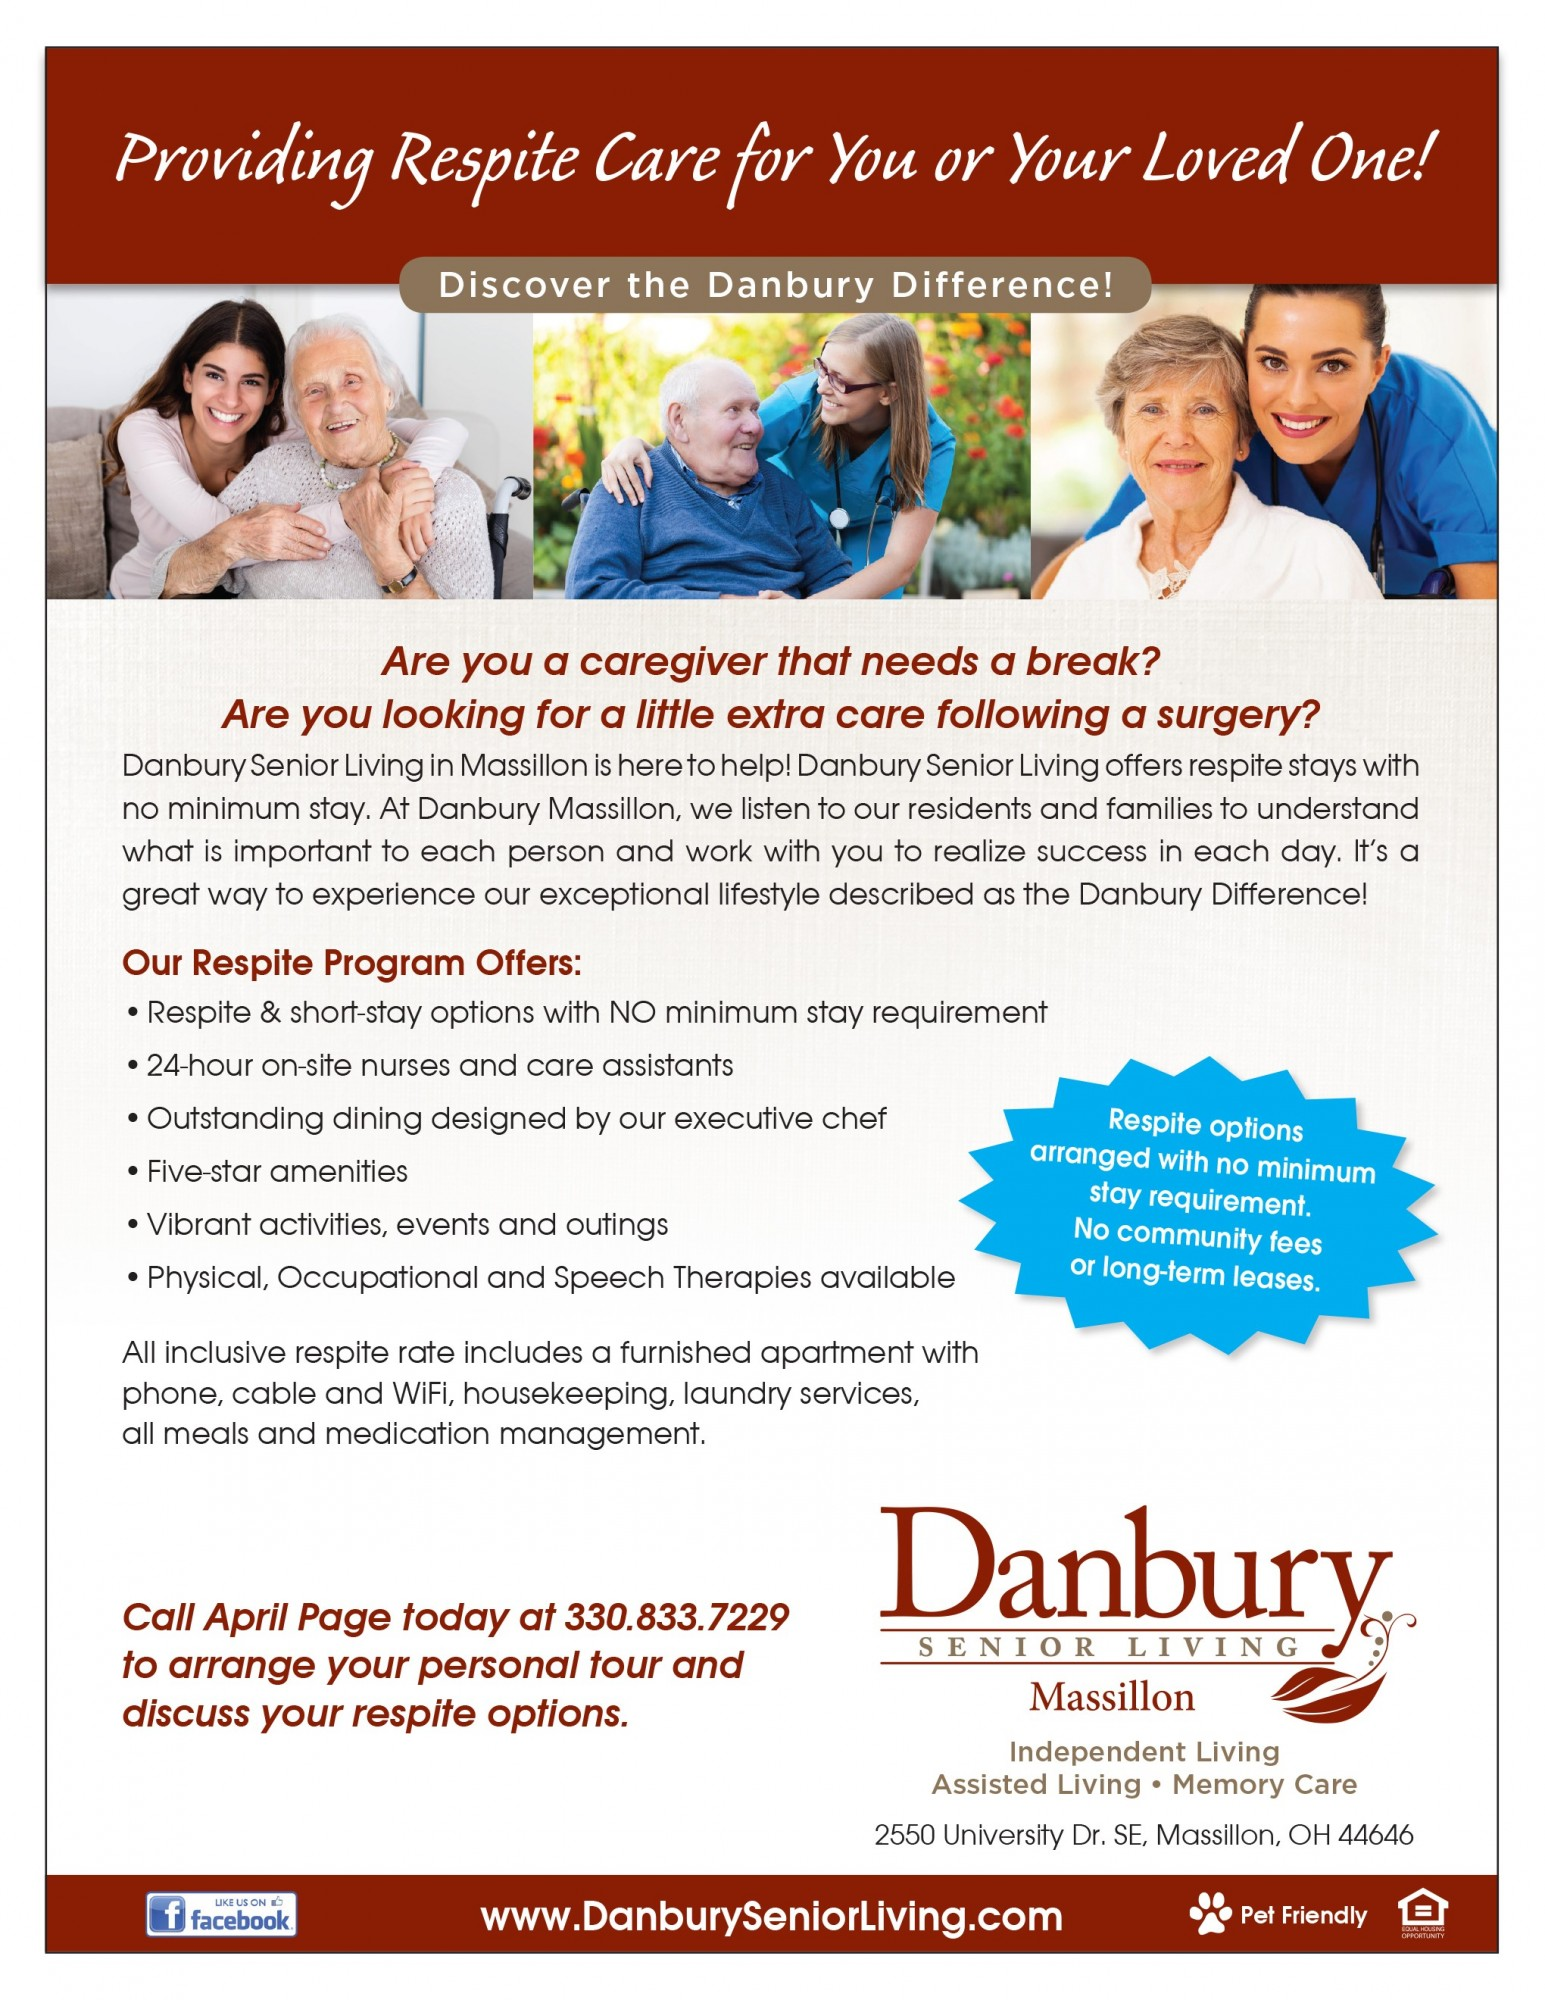 Respite Care Danbury Assisted Living